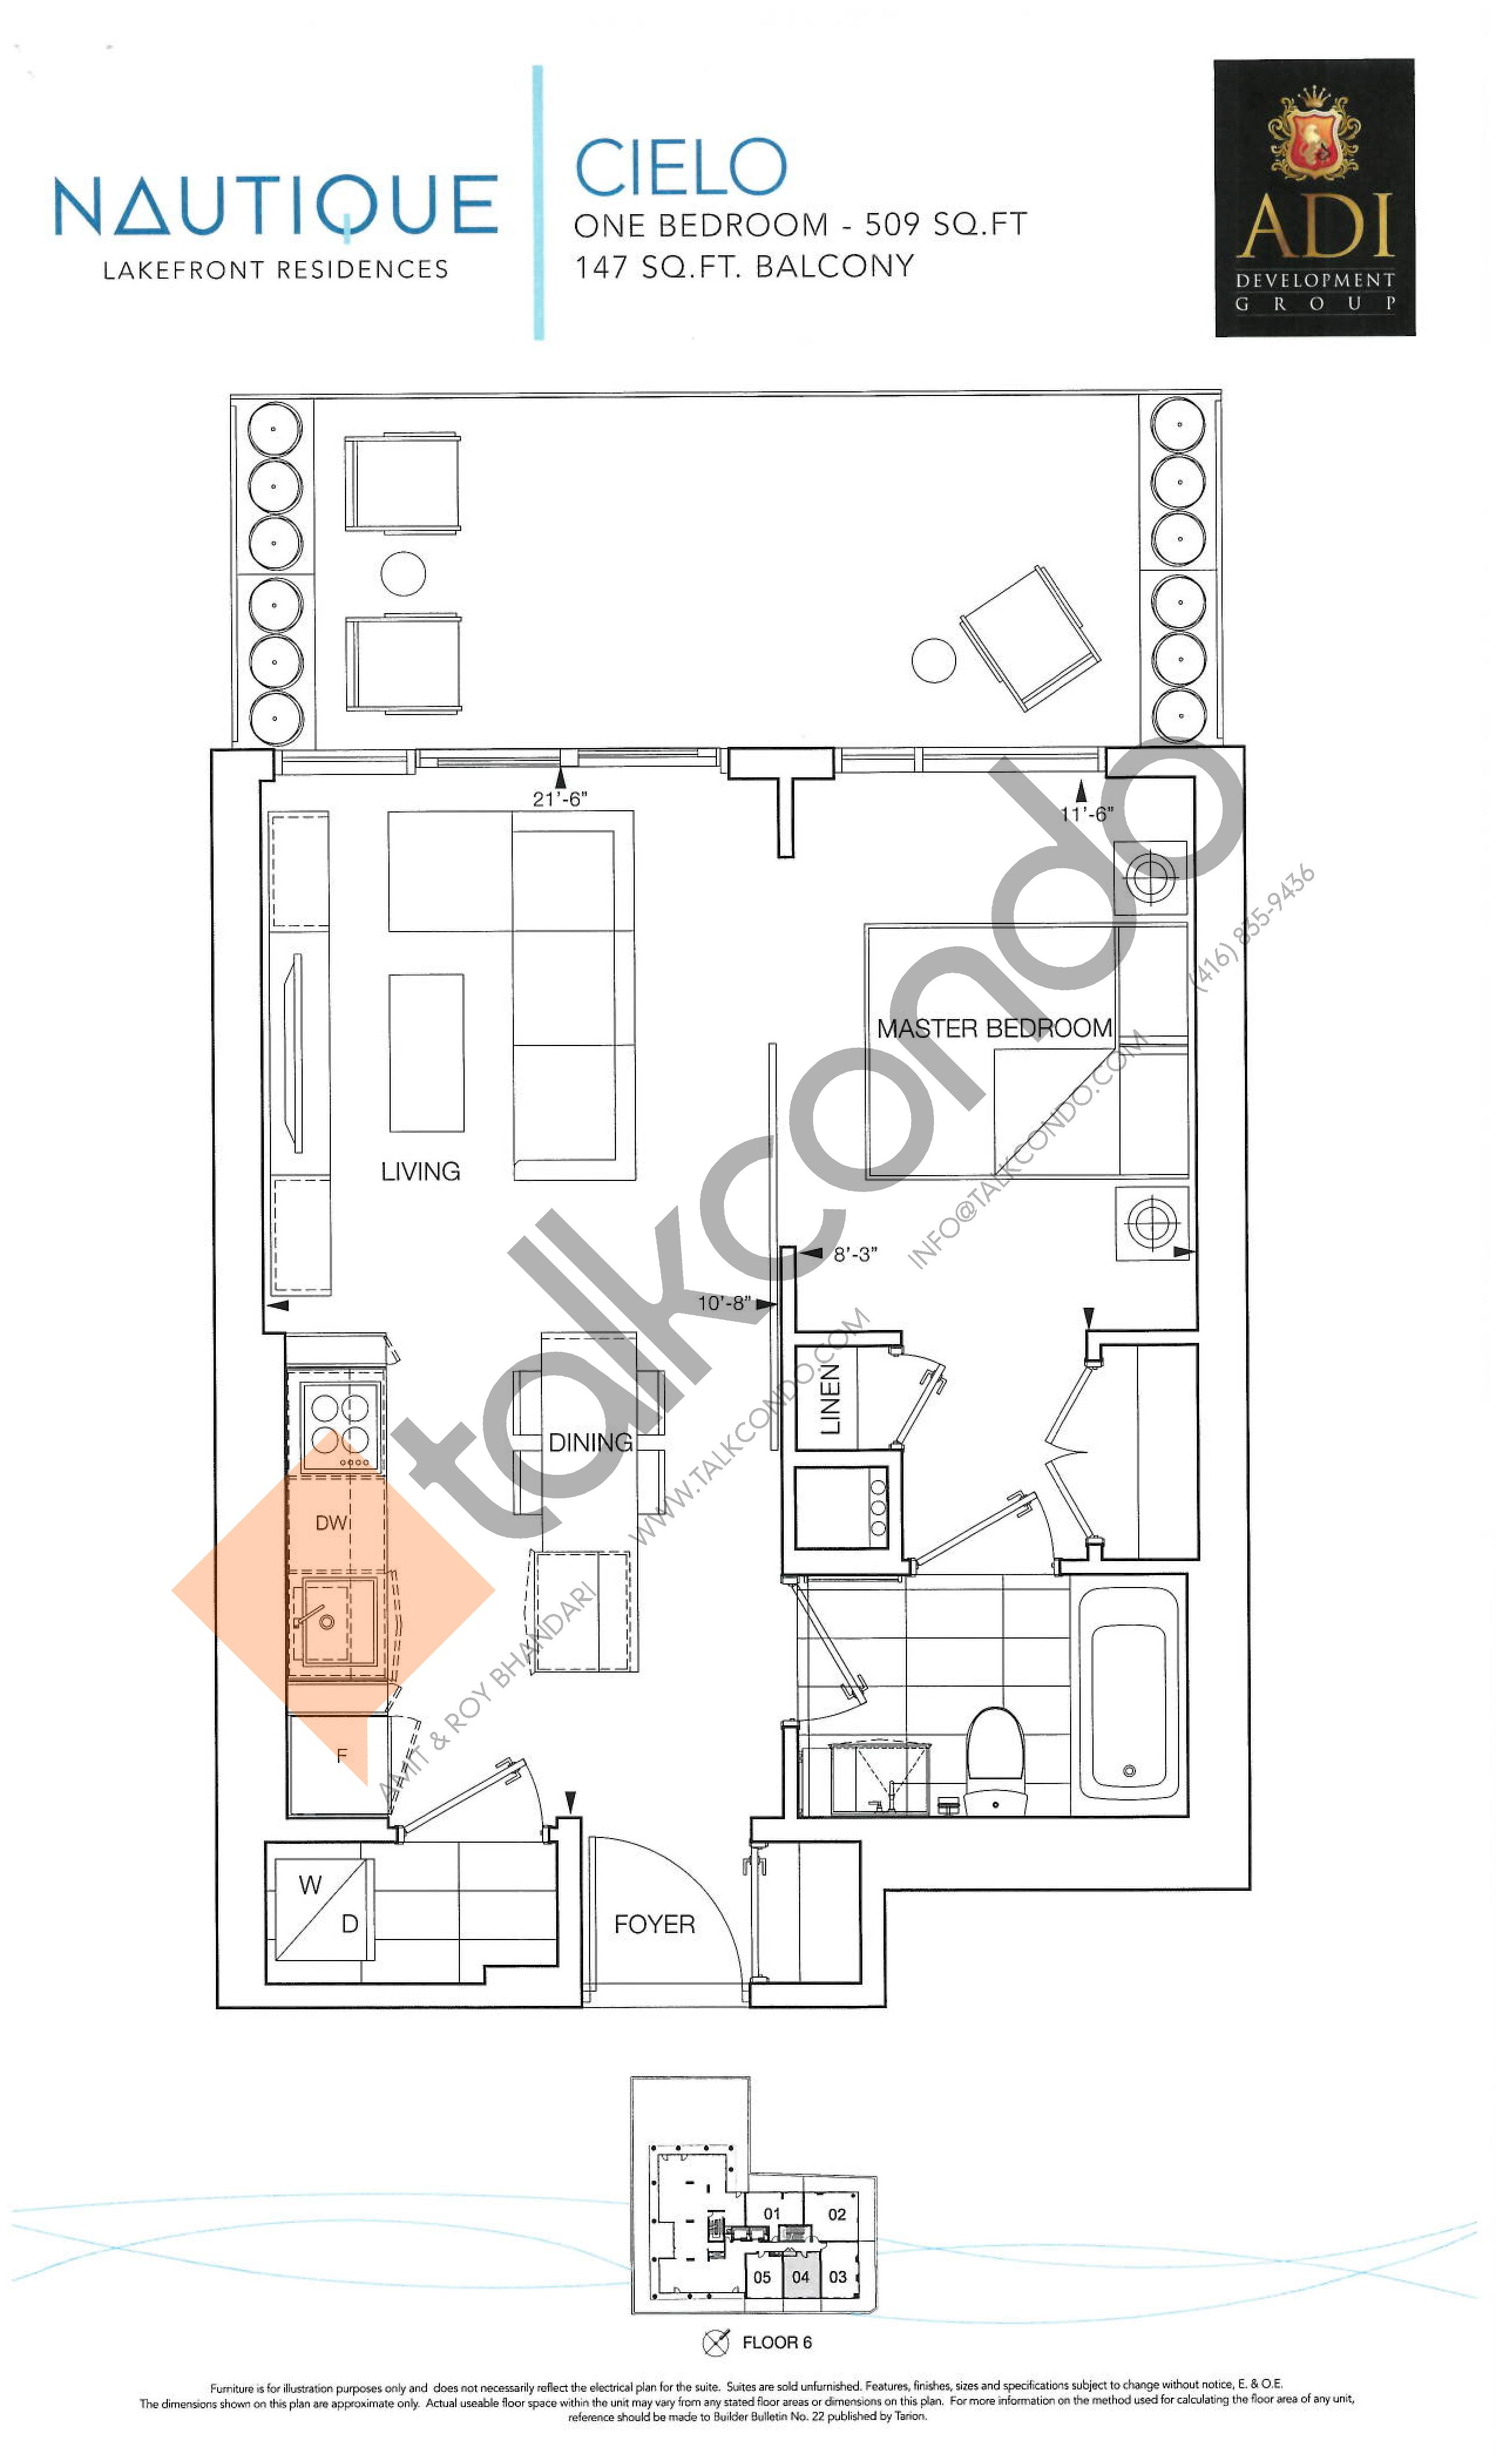 Cielo Floor Plan at Nautique Lakefront Residences - 509 sq.ft